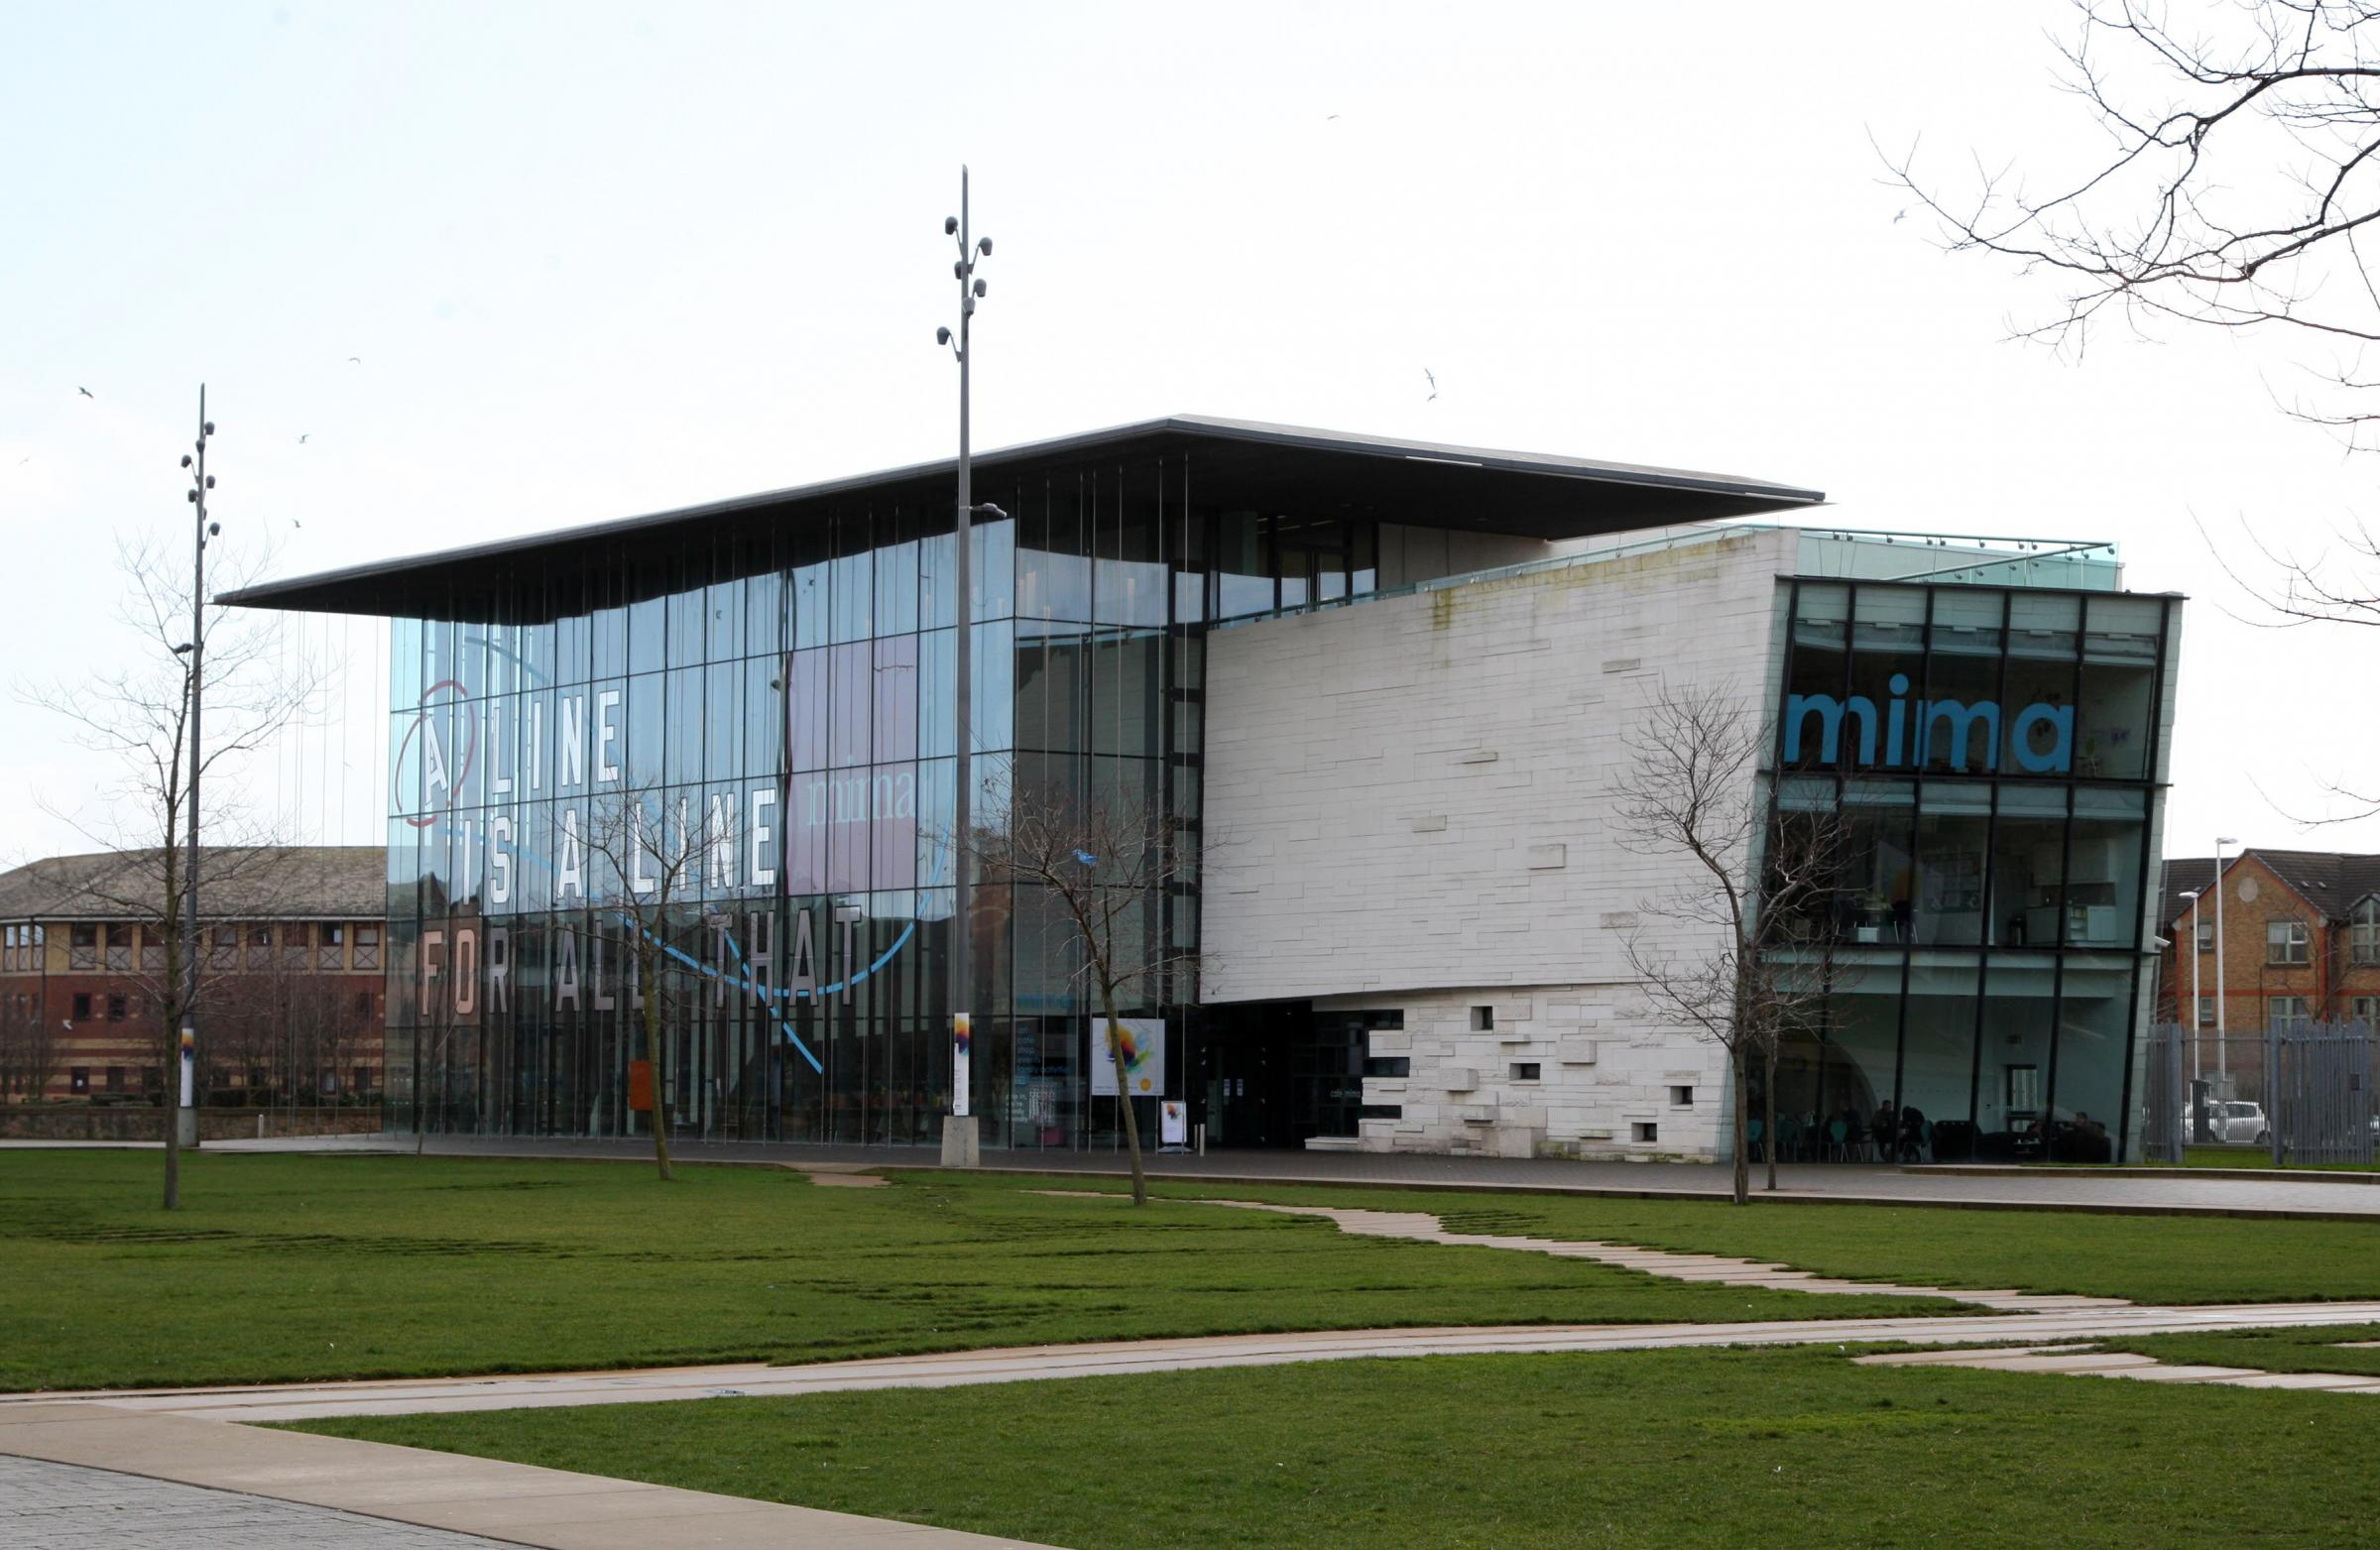 The mima in Middlesbrough